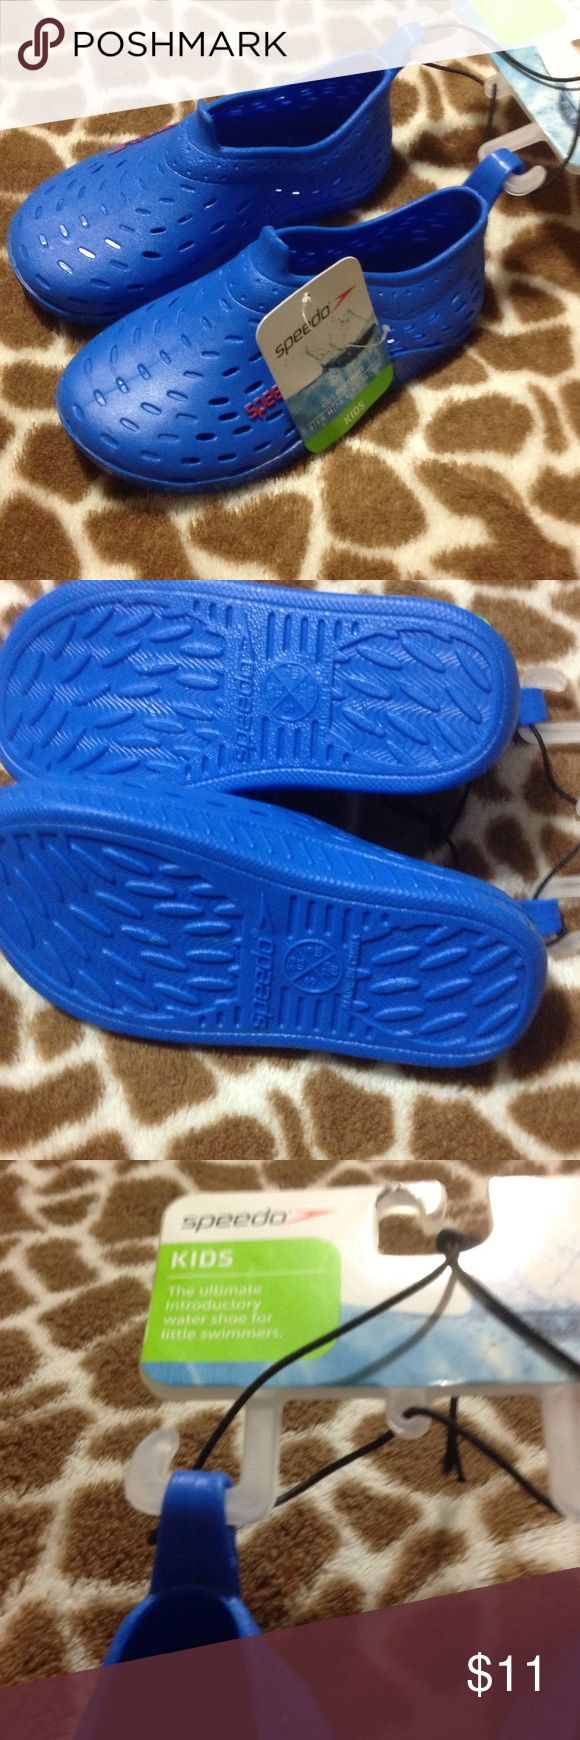 Speedo water shoes NWT s 5-6 NWT size s 5-6 speedo water shoes Speedo Shoes